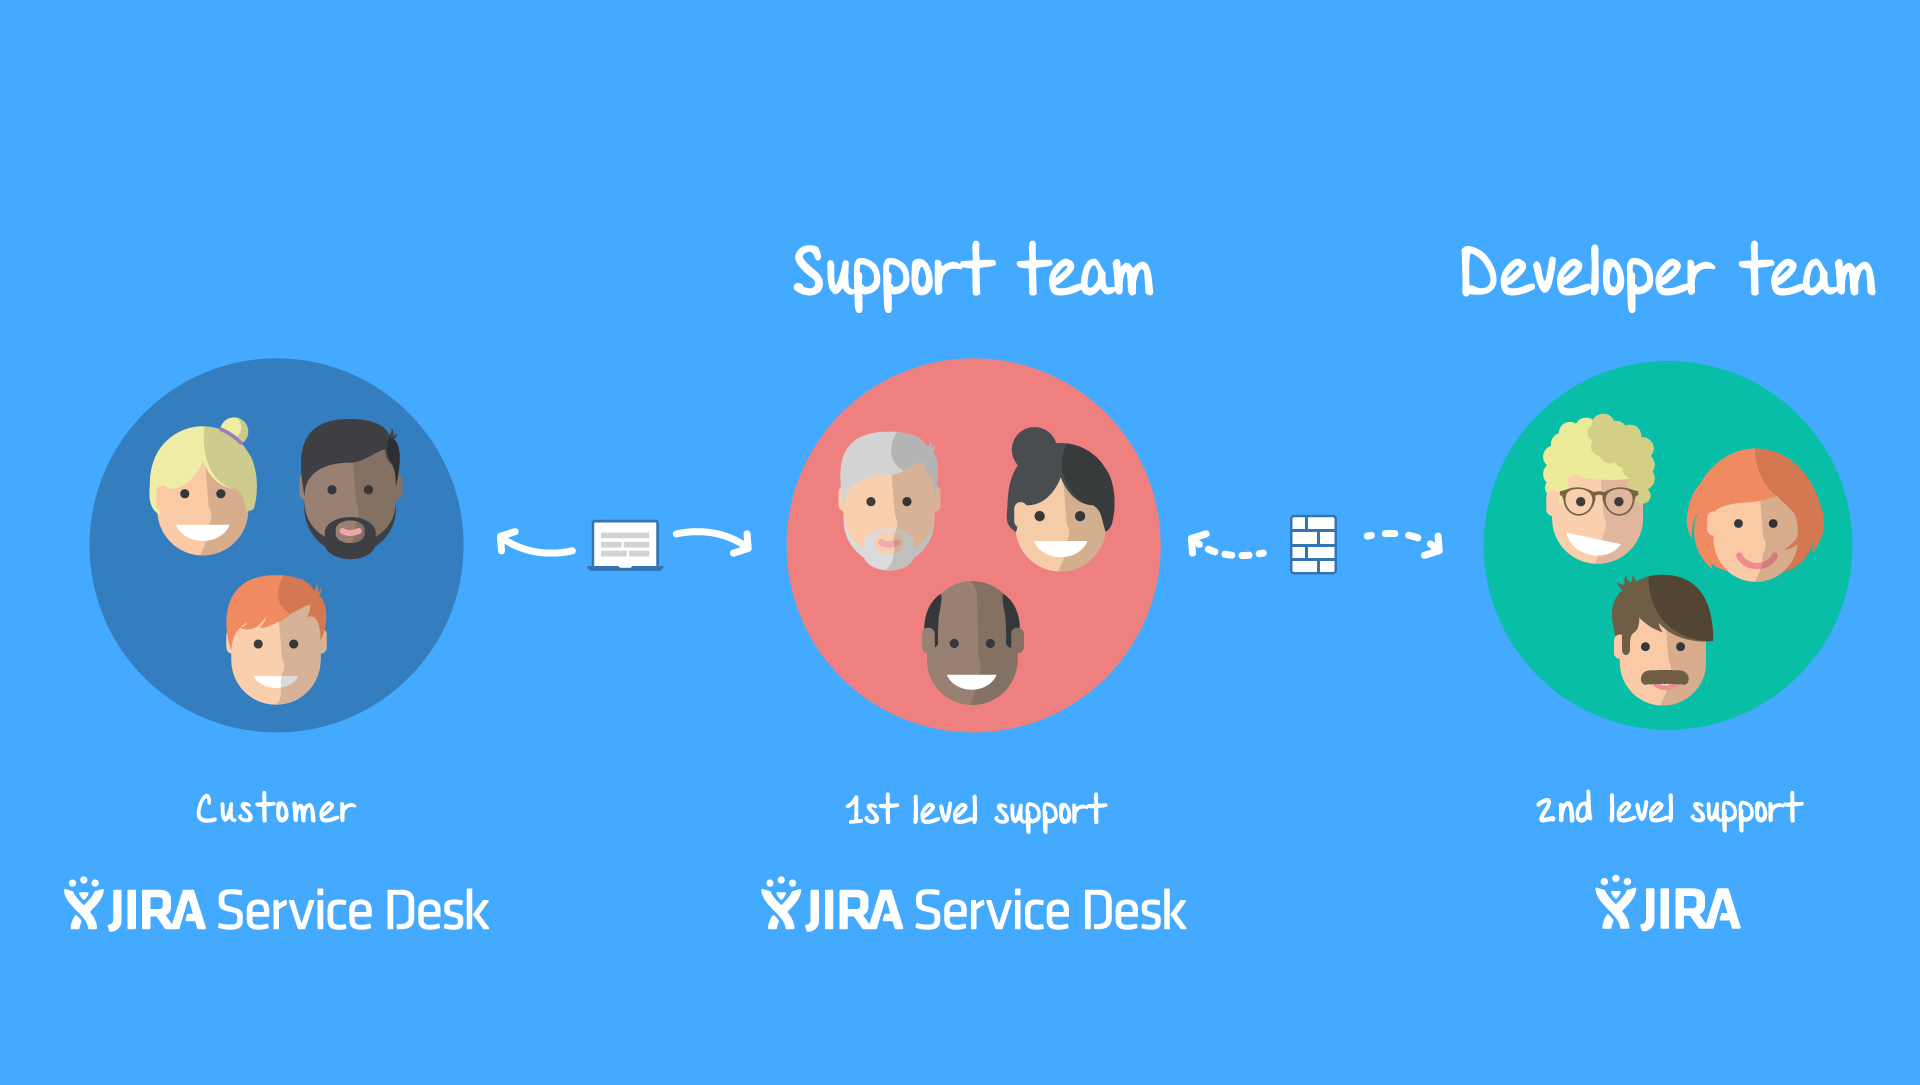 Typical support structure with JIRA Service Desk and JIRA